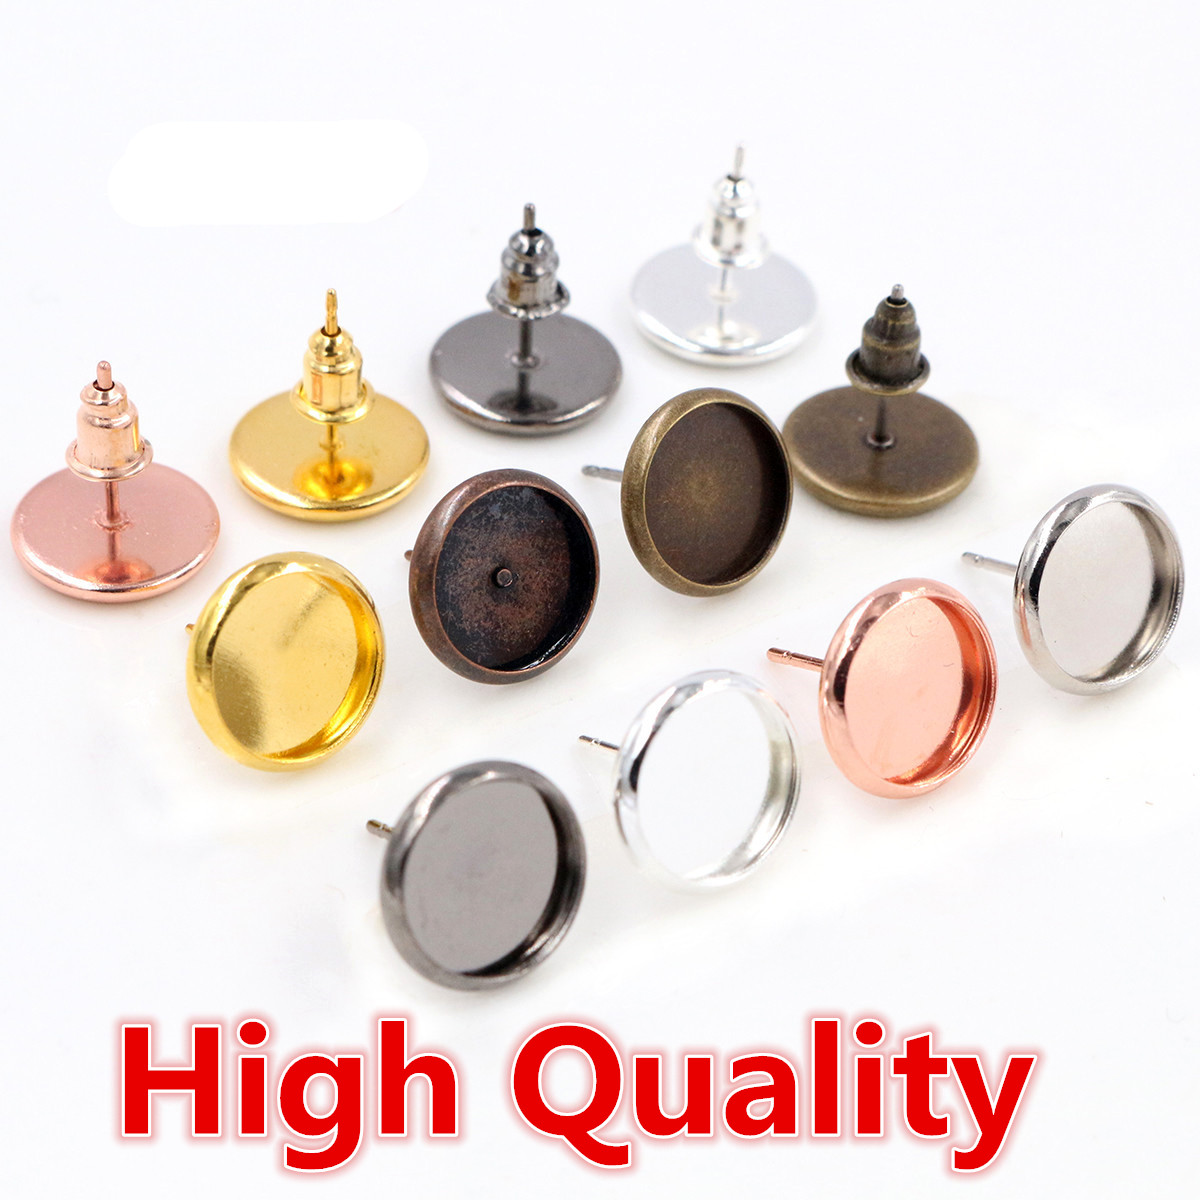 High Quality Copper Material 6mm 8mm 10mm 12mm 14mm Earring Studs,Earrings Blank/Base,Fit 6-14mm Cabochons,earring Setting